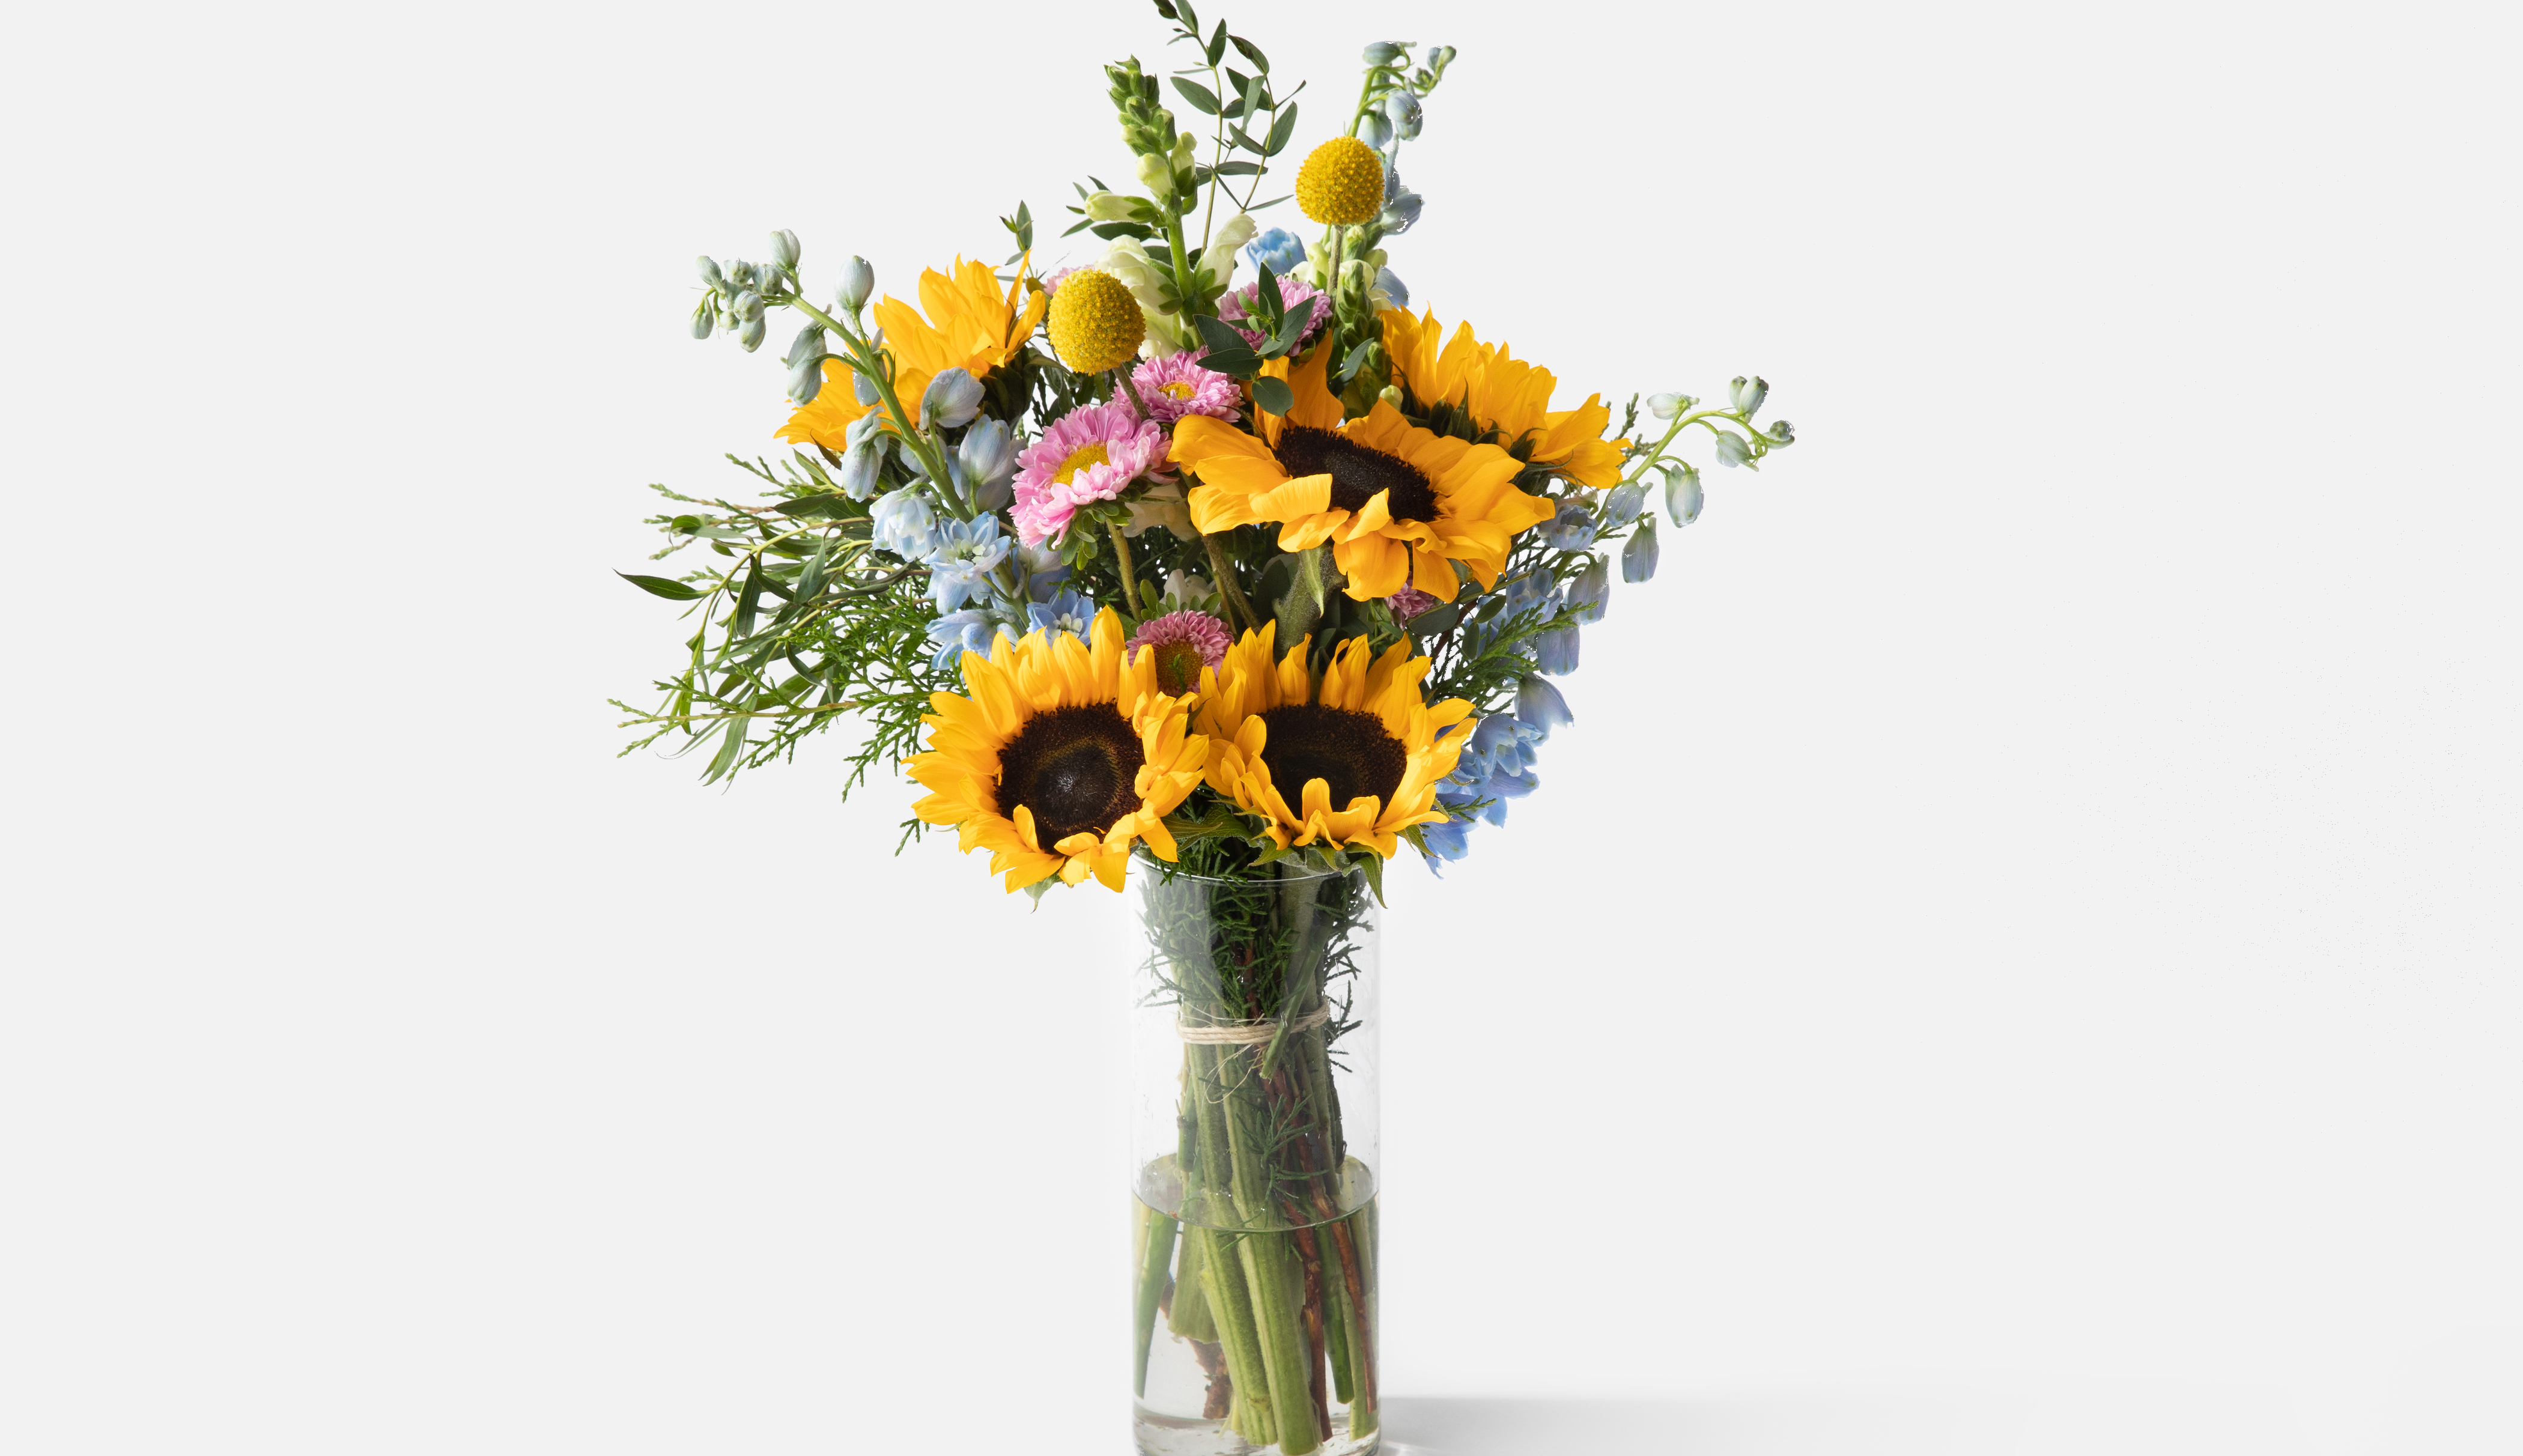 Bouquet with sunflowers and other florals in glass vase.